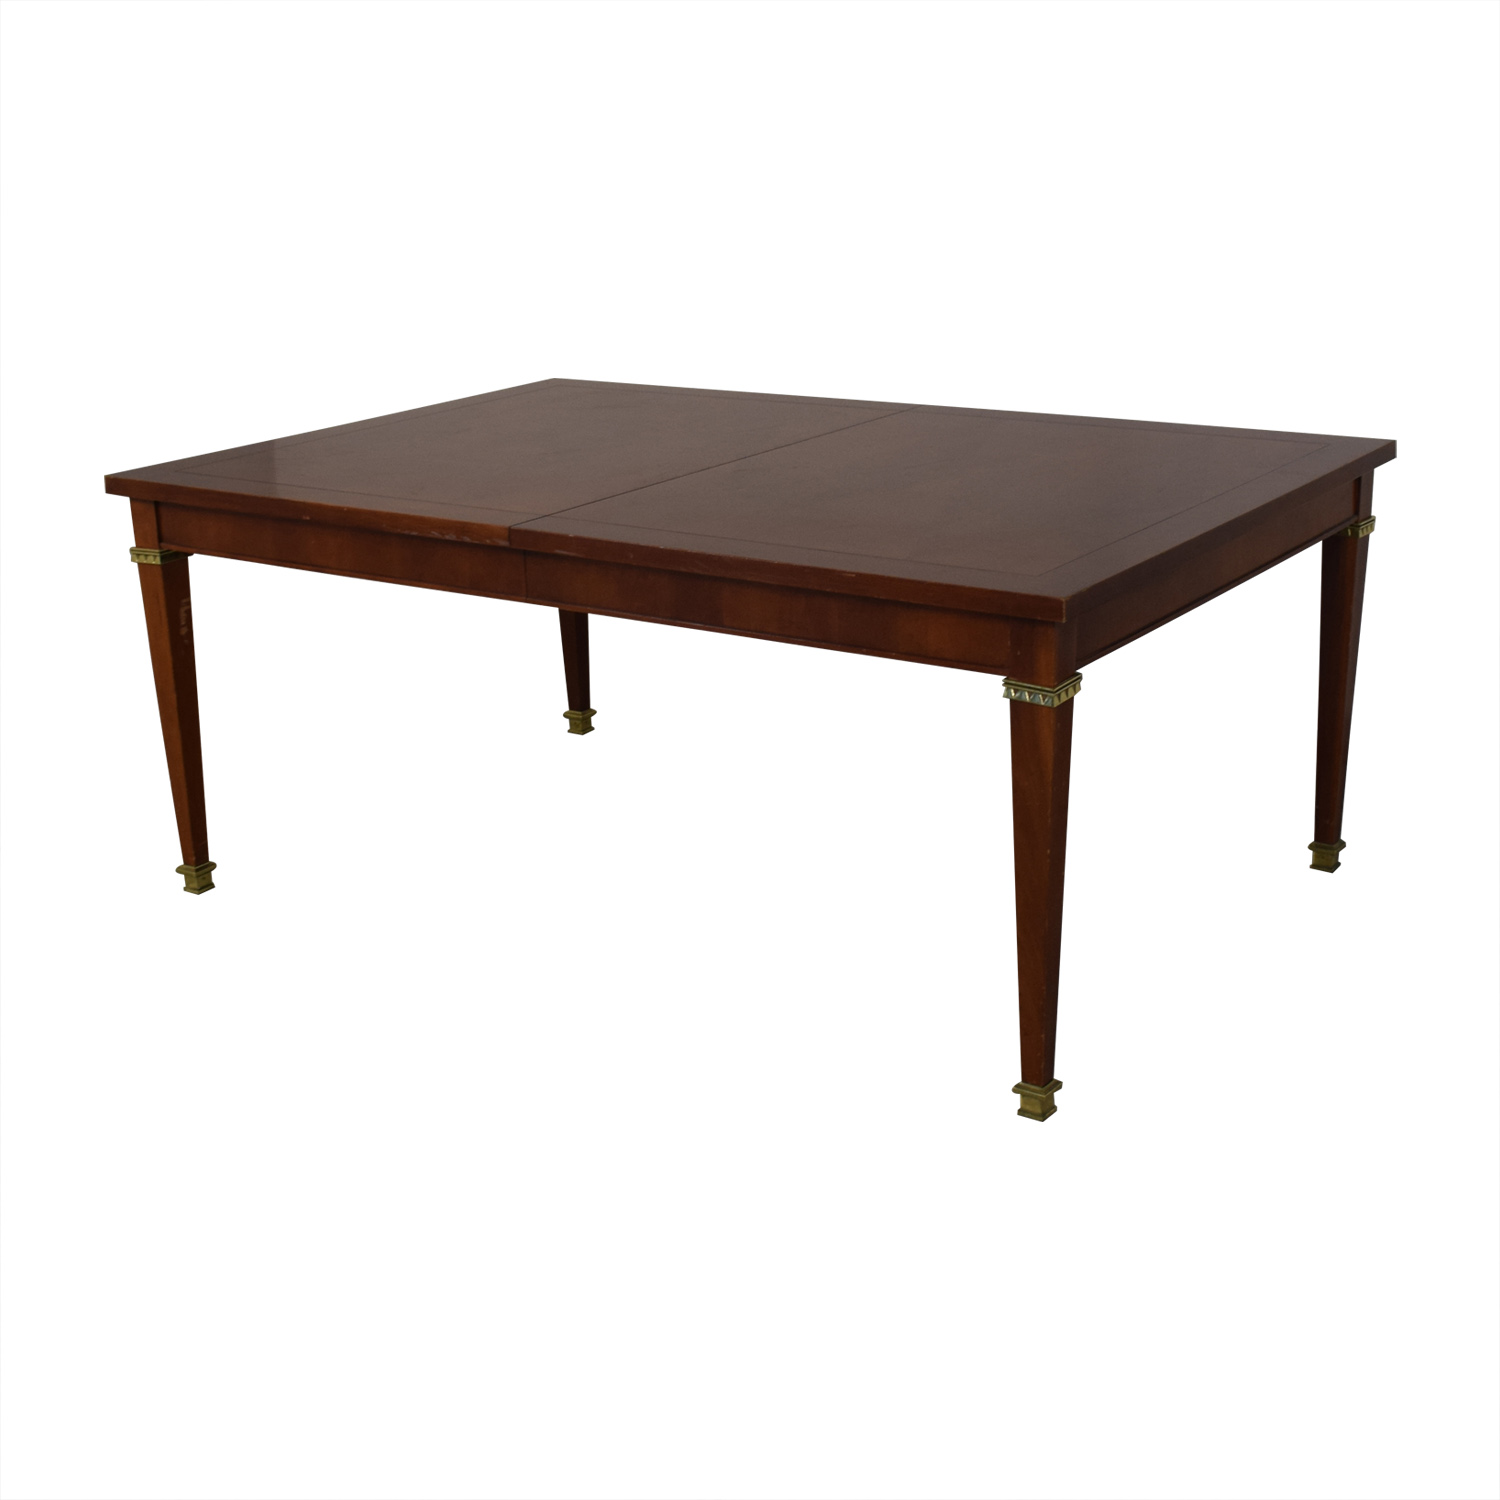 buy  Vintage Dining Table With Gold Accents online